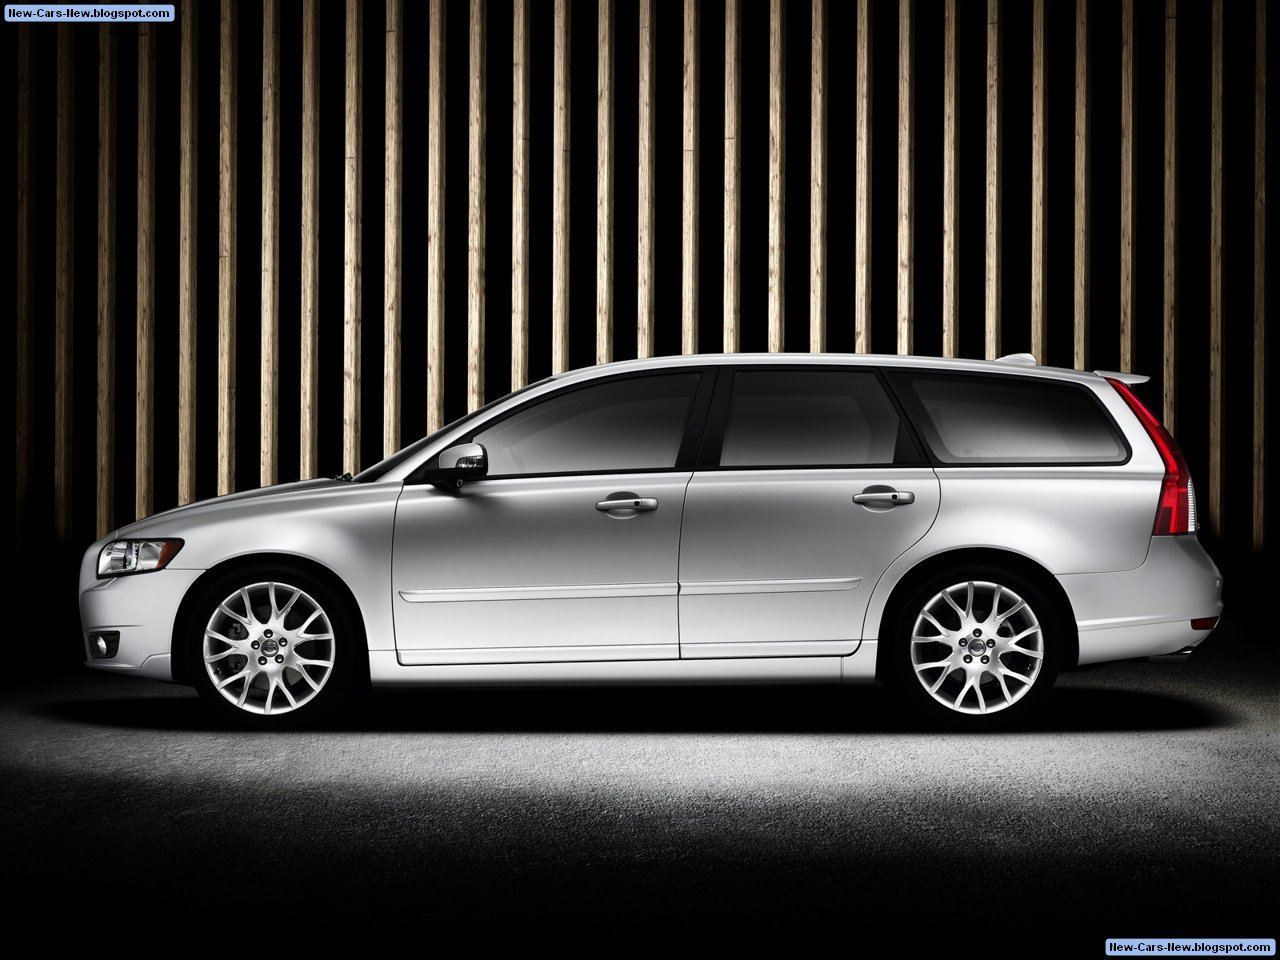 S Coupe Amg >> Volvo V50 (2008) - Best Car Blog: Volvo V50 (2008)